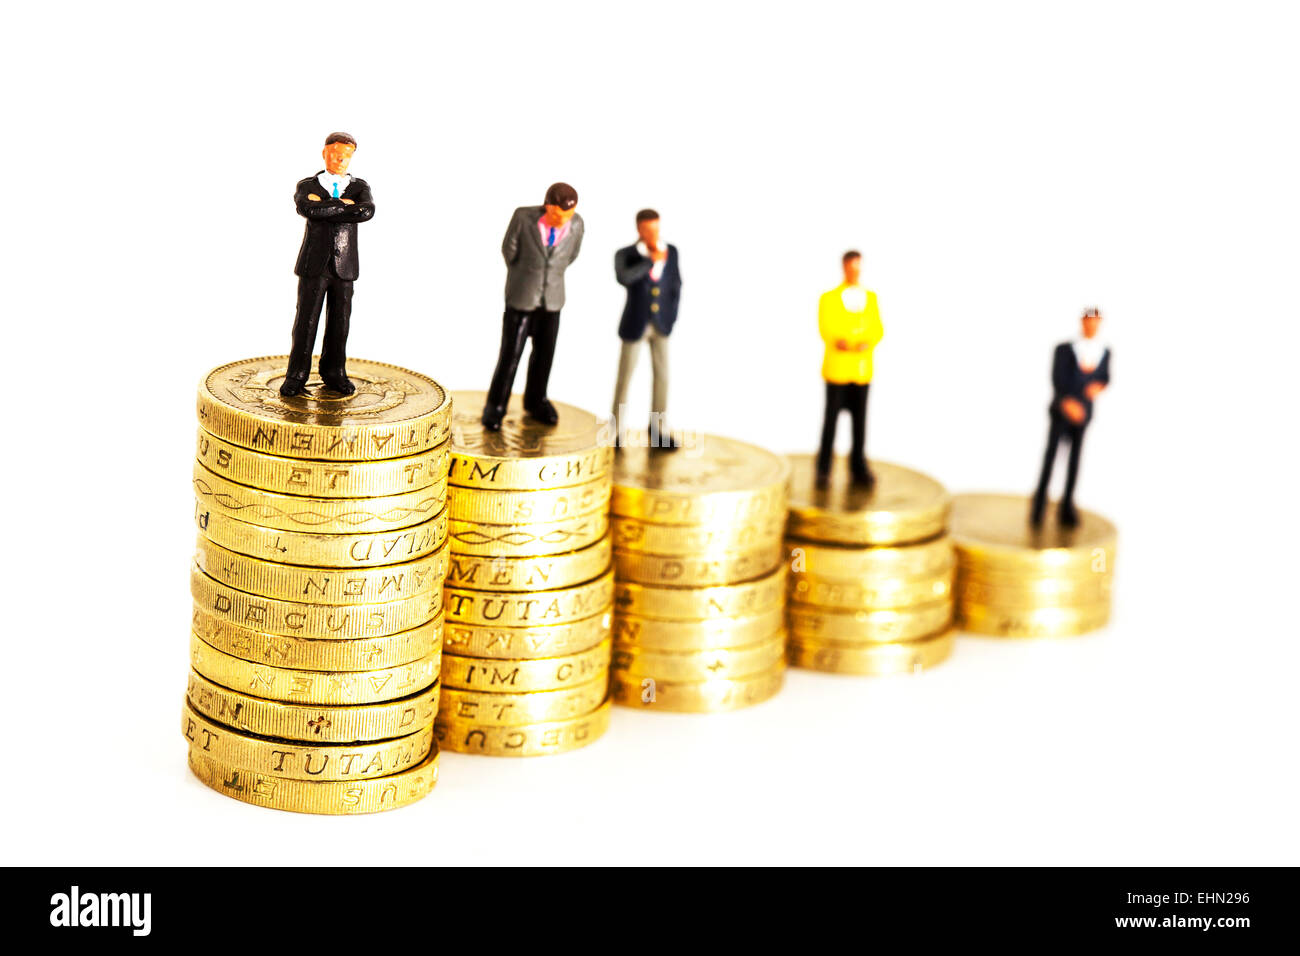 budget budgeting money rising earning pay scale concept pound coins stacks isolated cut out cutout white background - Stock Image